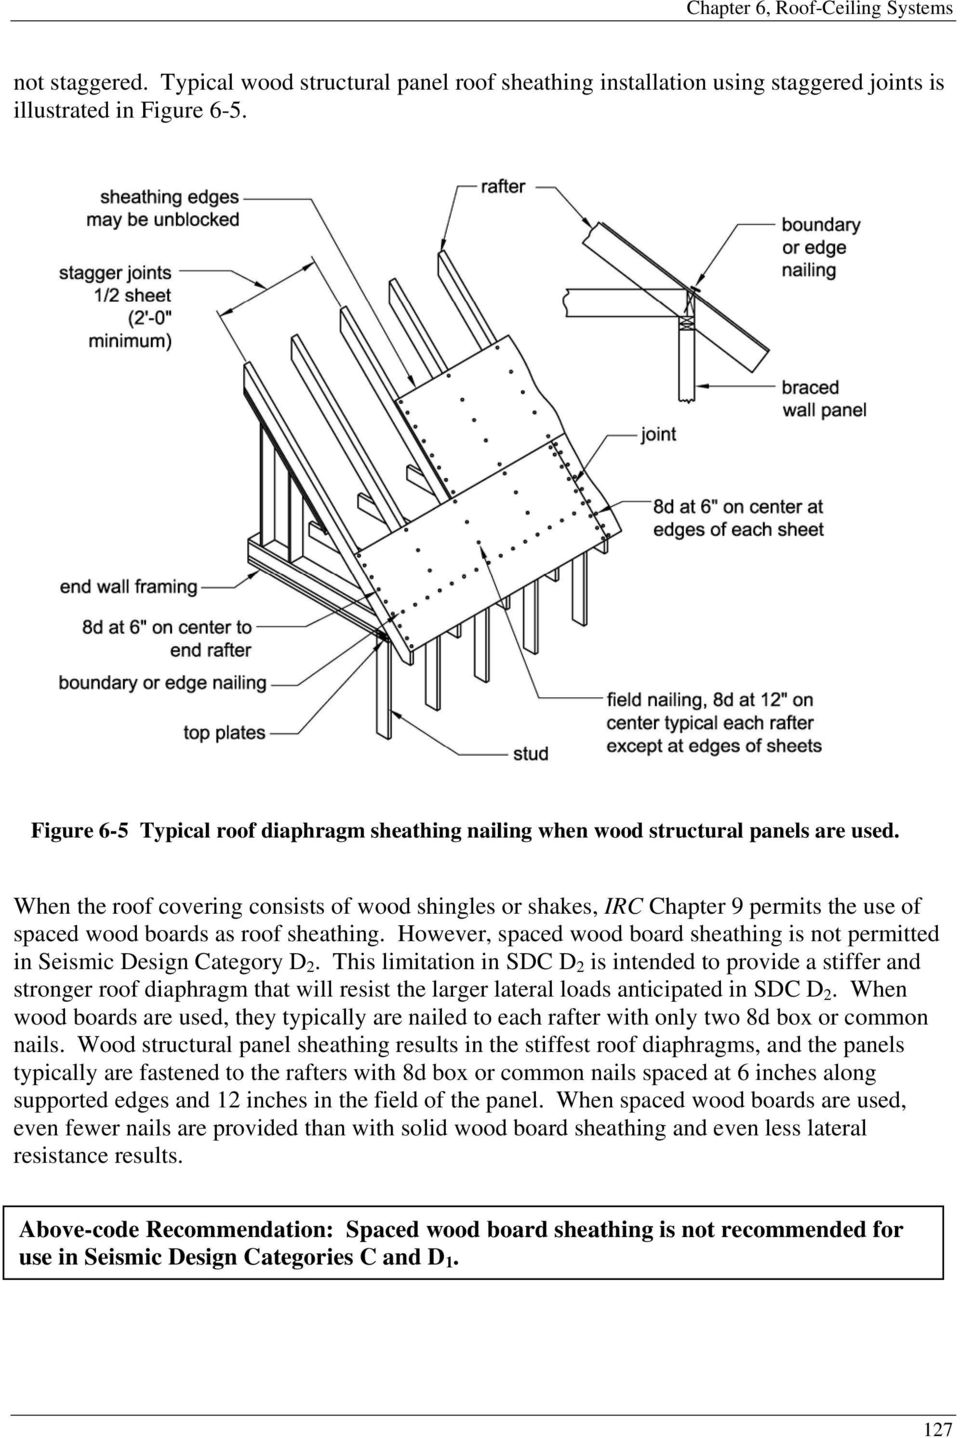 When the roof covering consists of wood shingles or shakes, IRC Chapter 9 permits the use of spaced wood boards as roof sheathing.